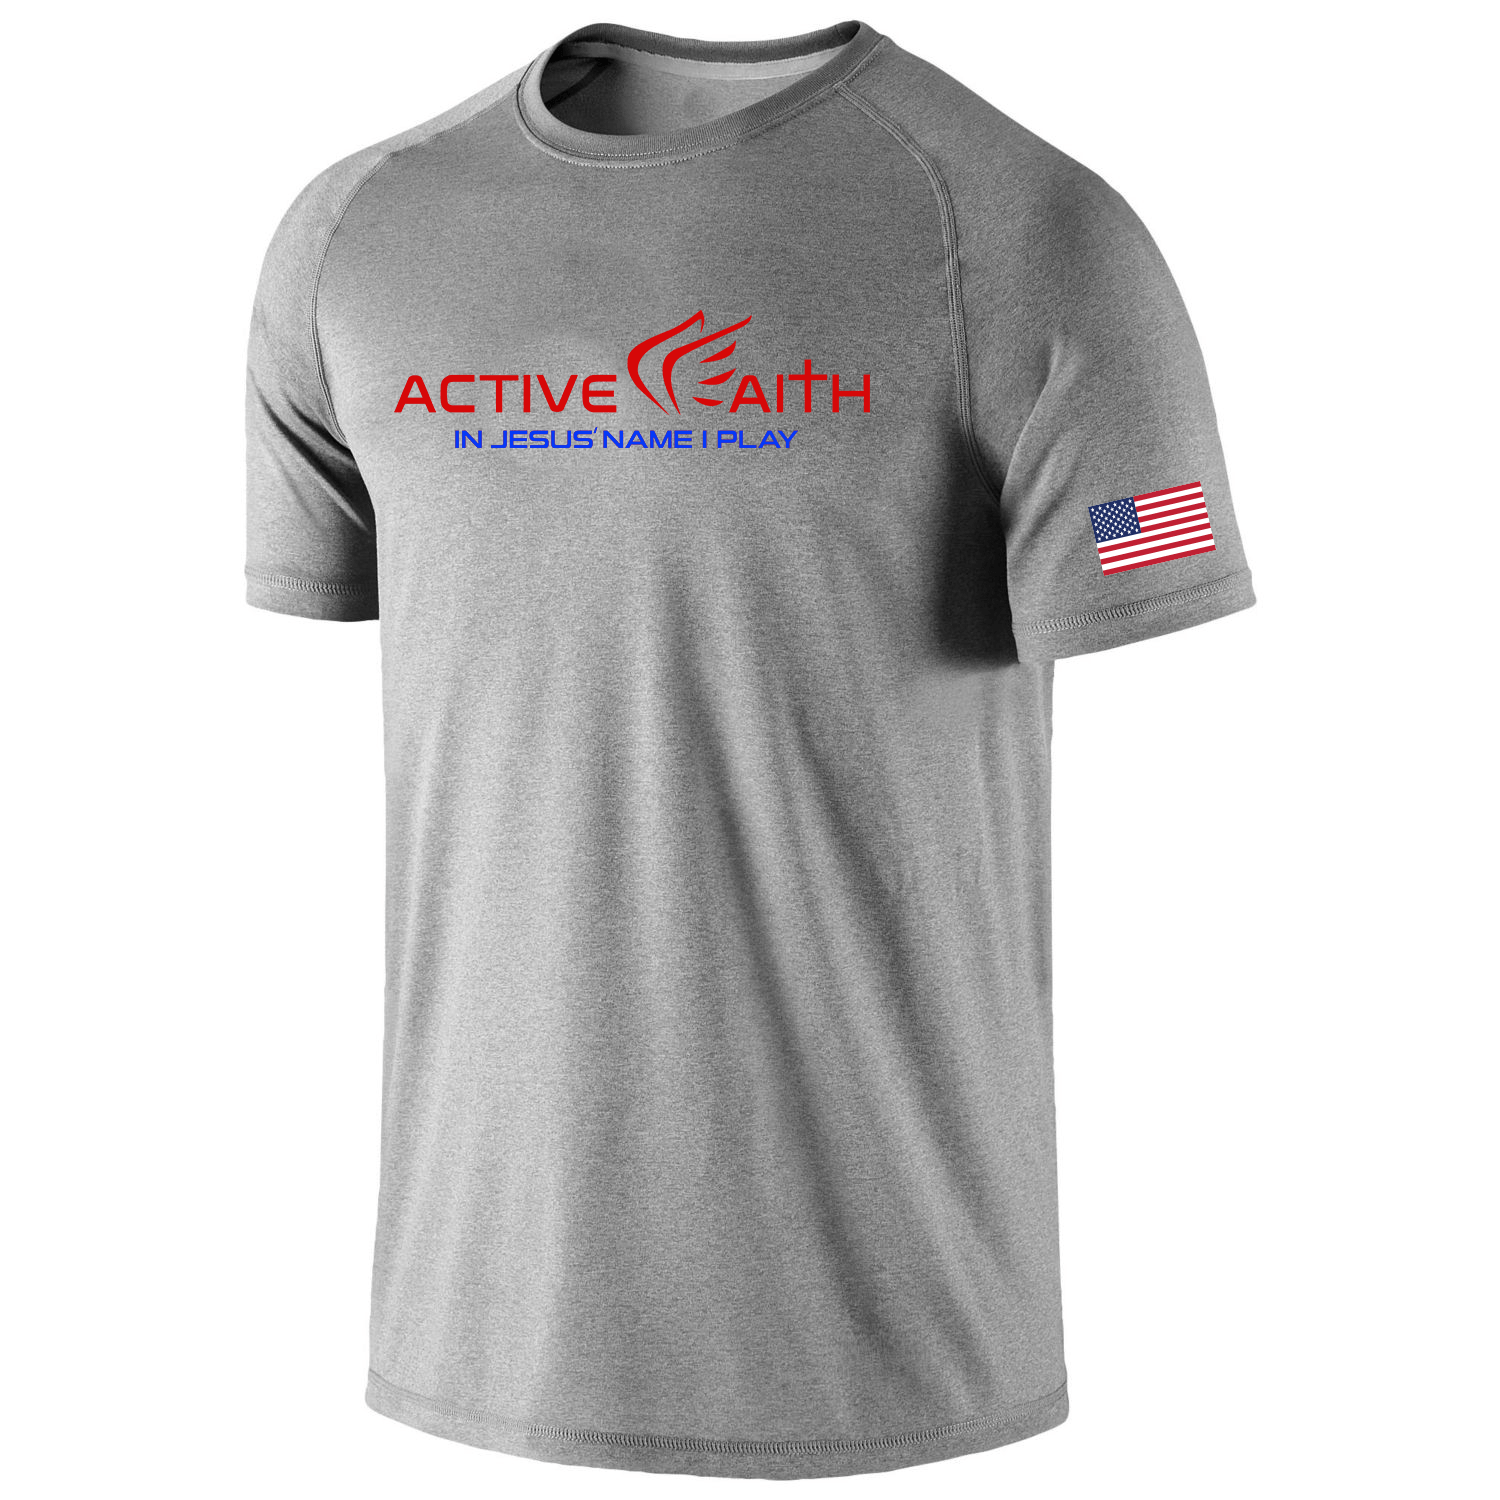 Youth Girls Olympic Statement Shirt